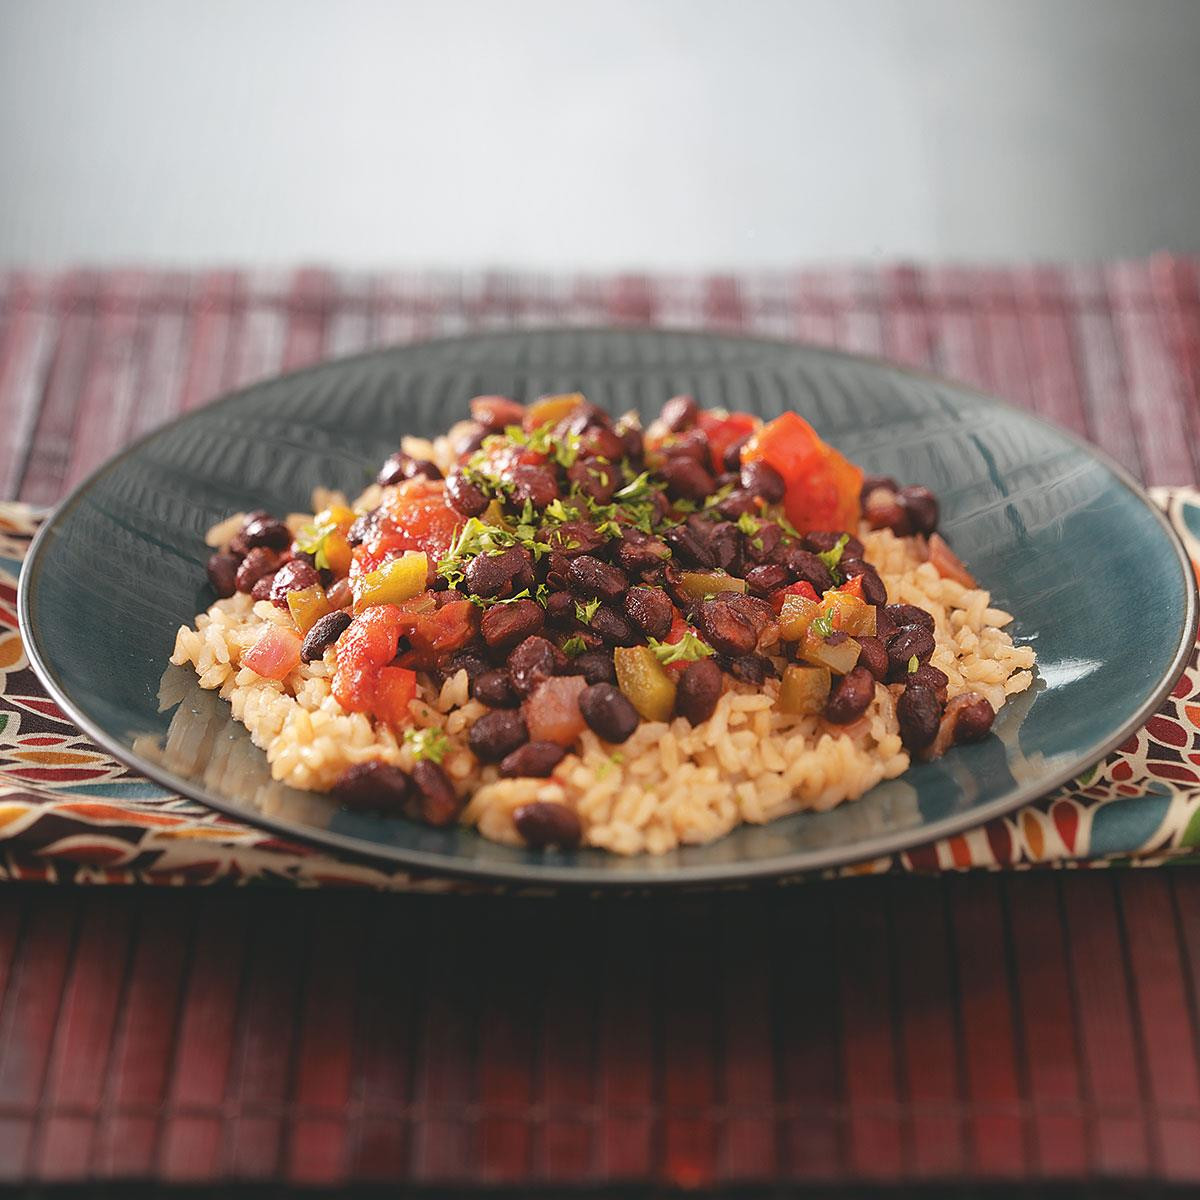 Black Beans And Brown Rice Healthy  Black Beans with Brown Rice Recipe